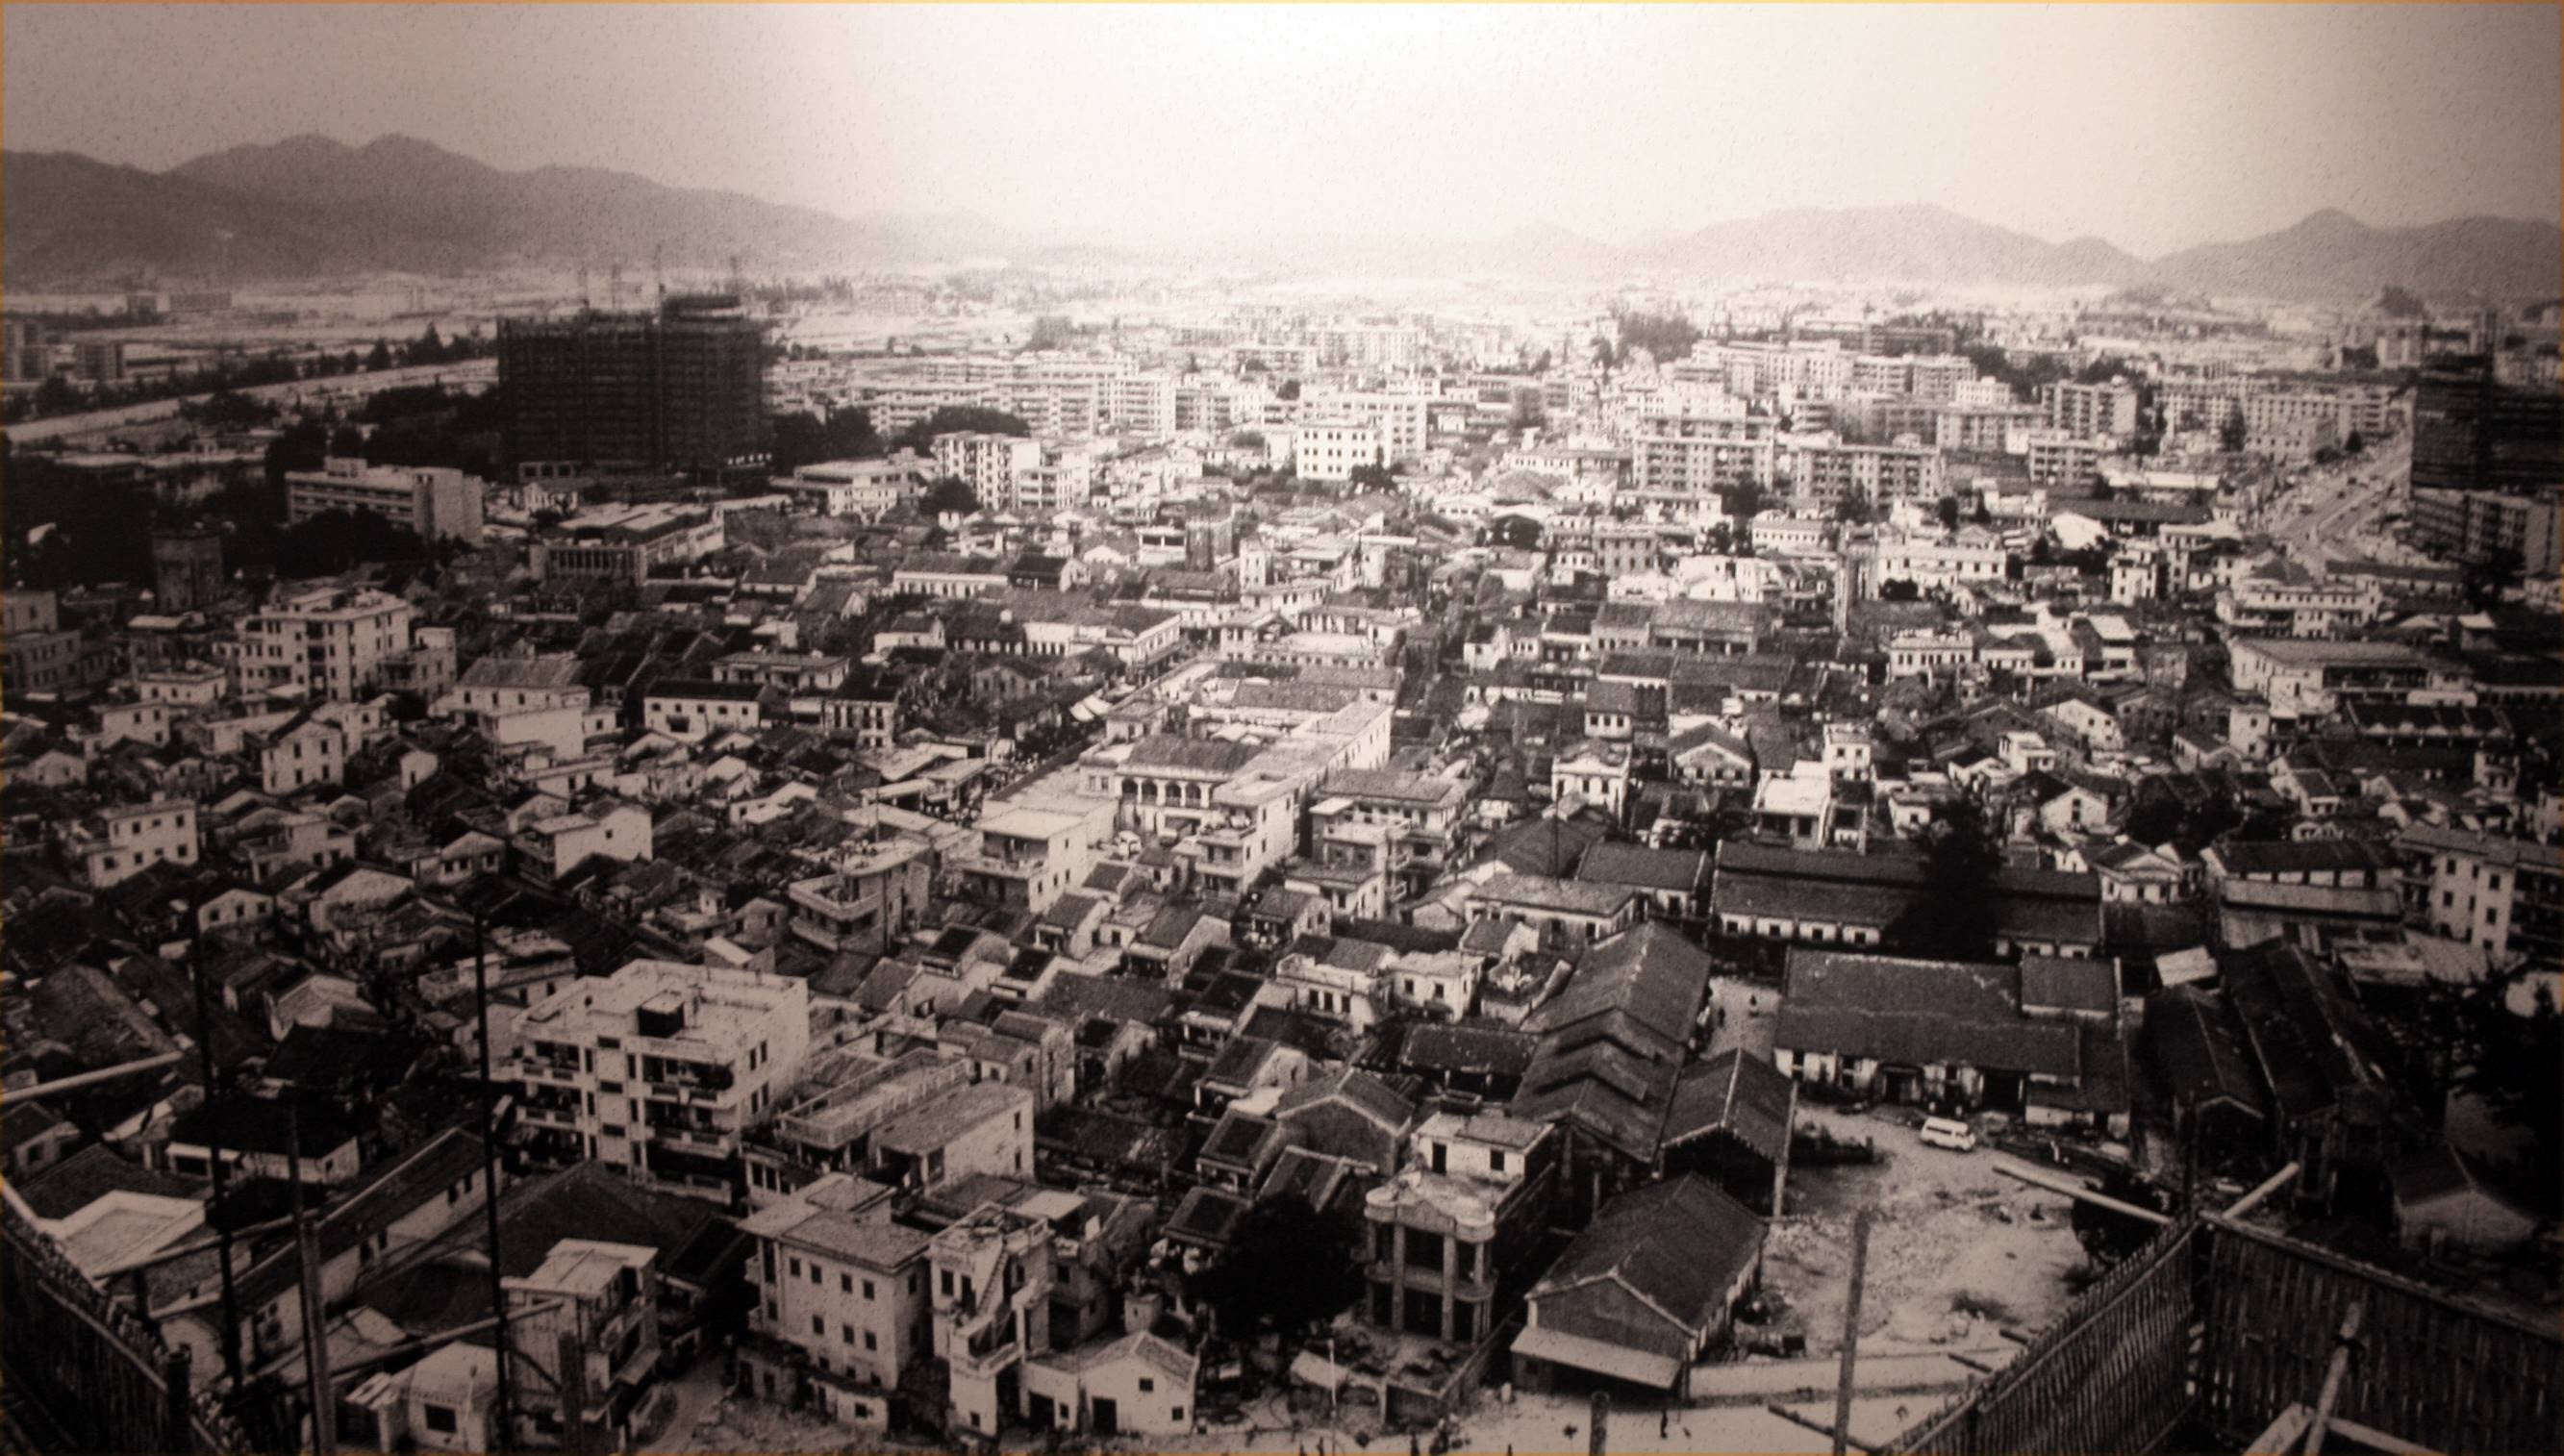 from another website, Shenzhen 1970s